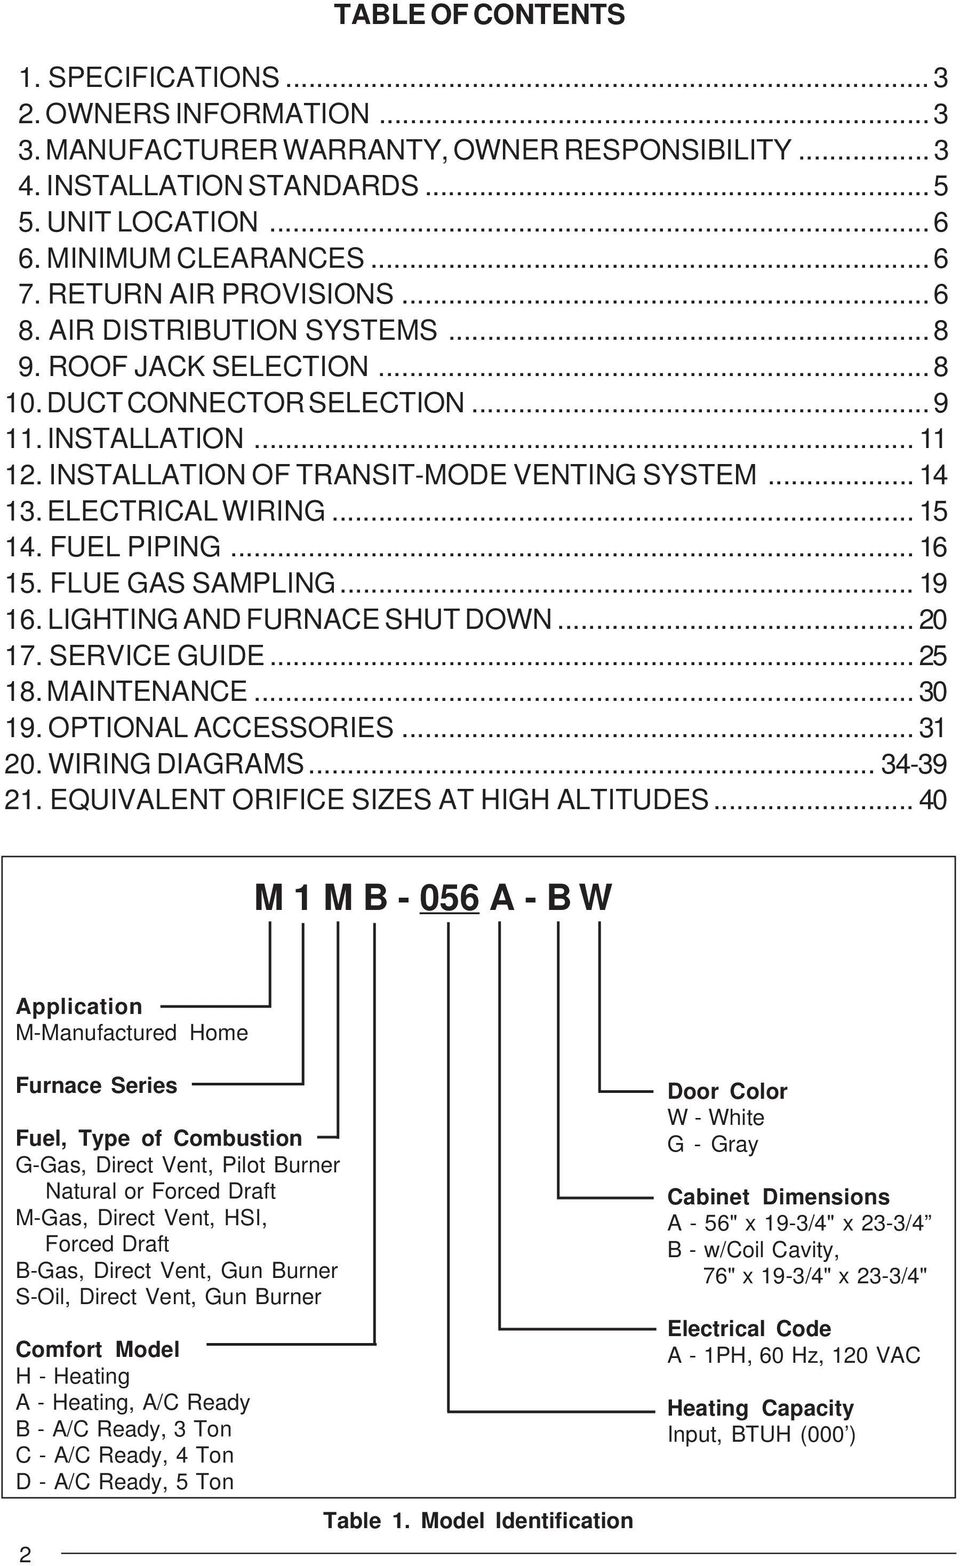 hight resolution of electrical wiring 5 4 fuel piping 6 5